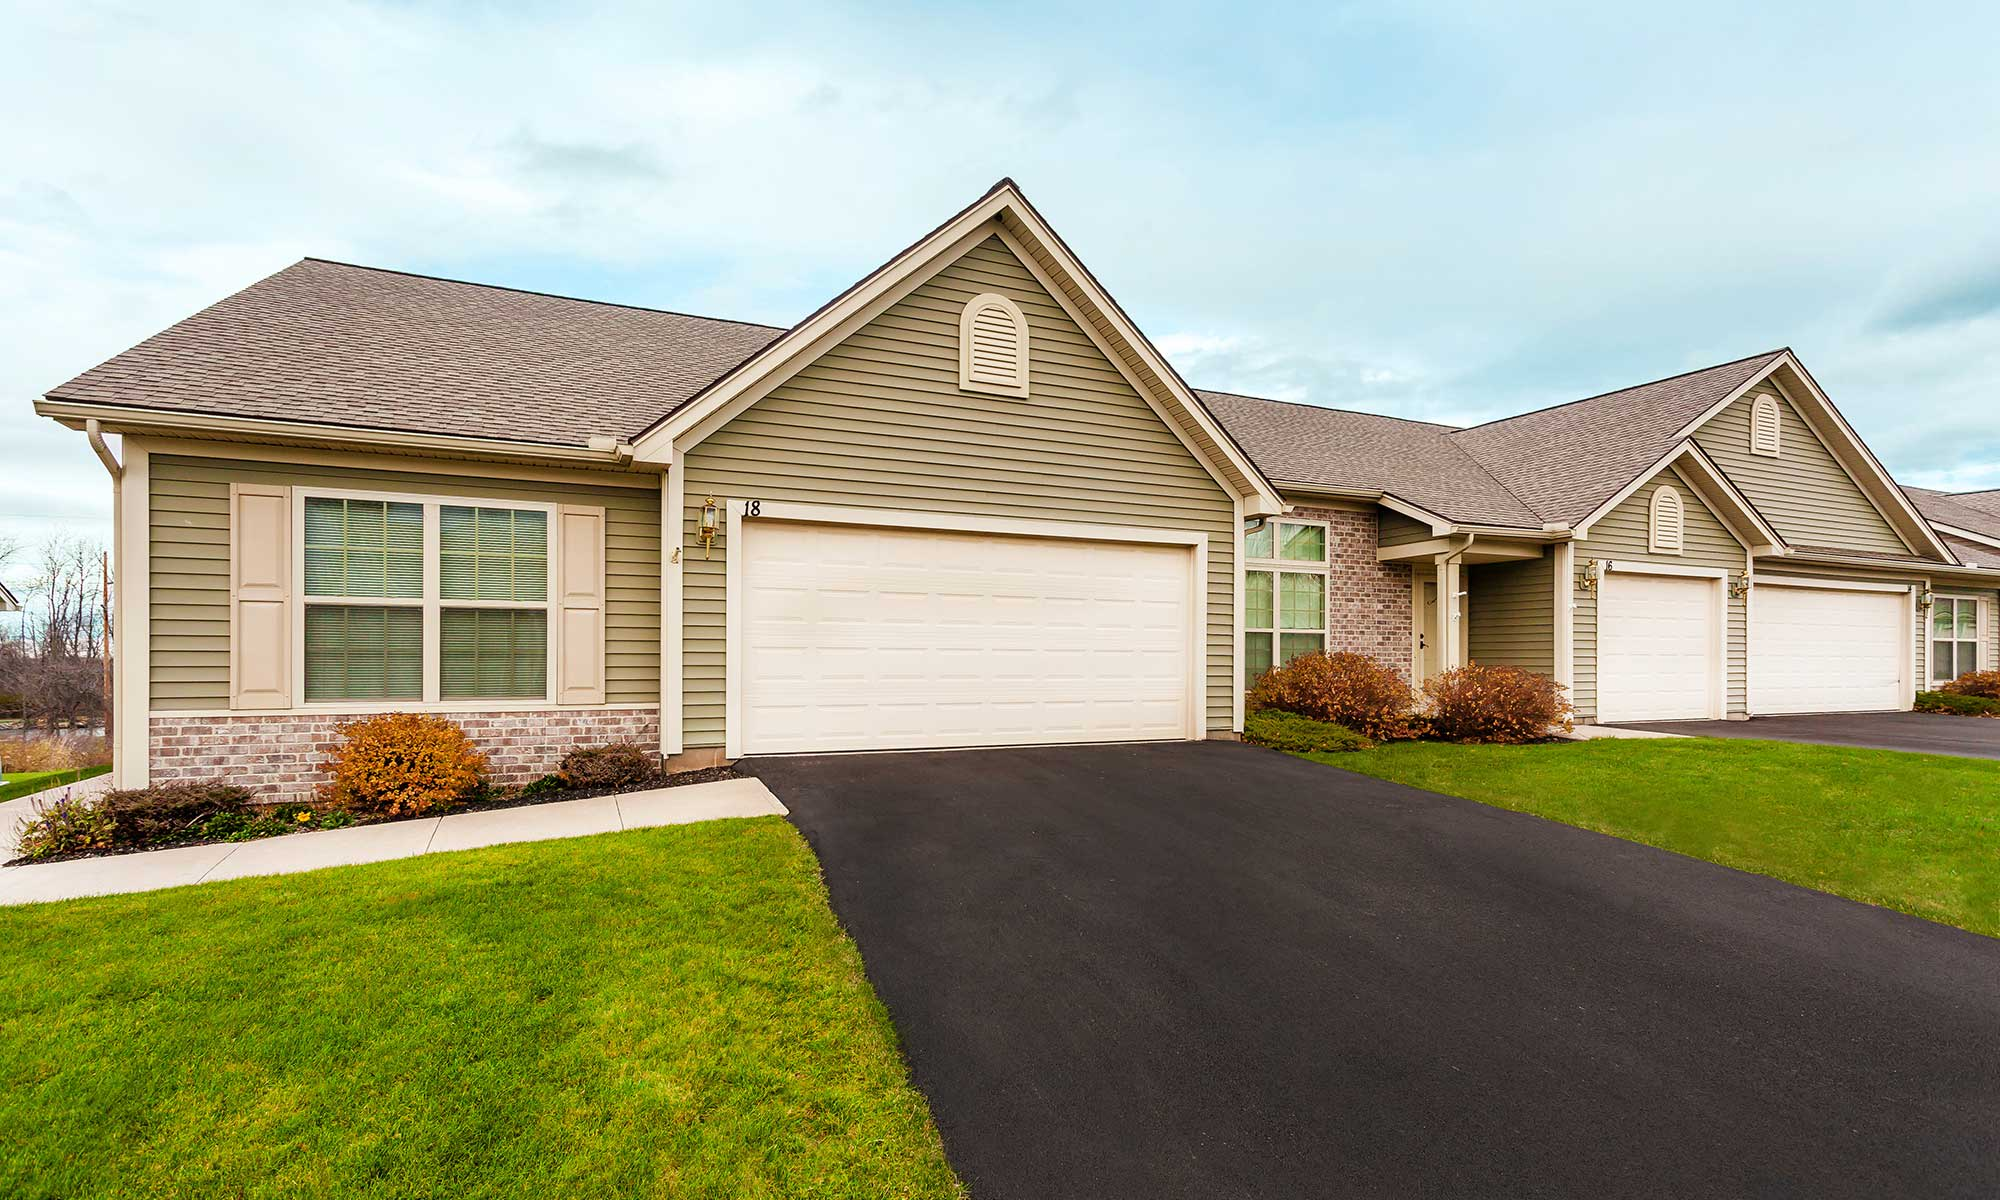 Apartments in Spencerport, New York